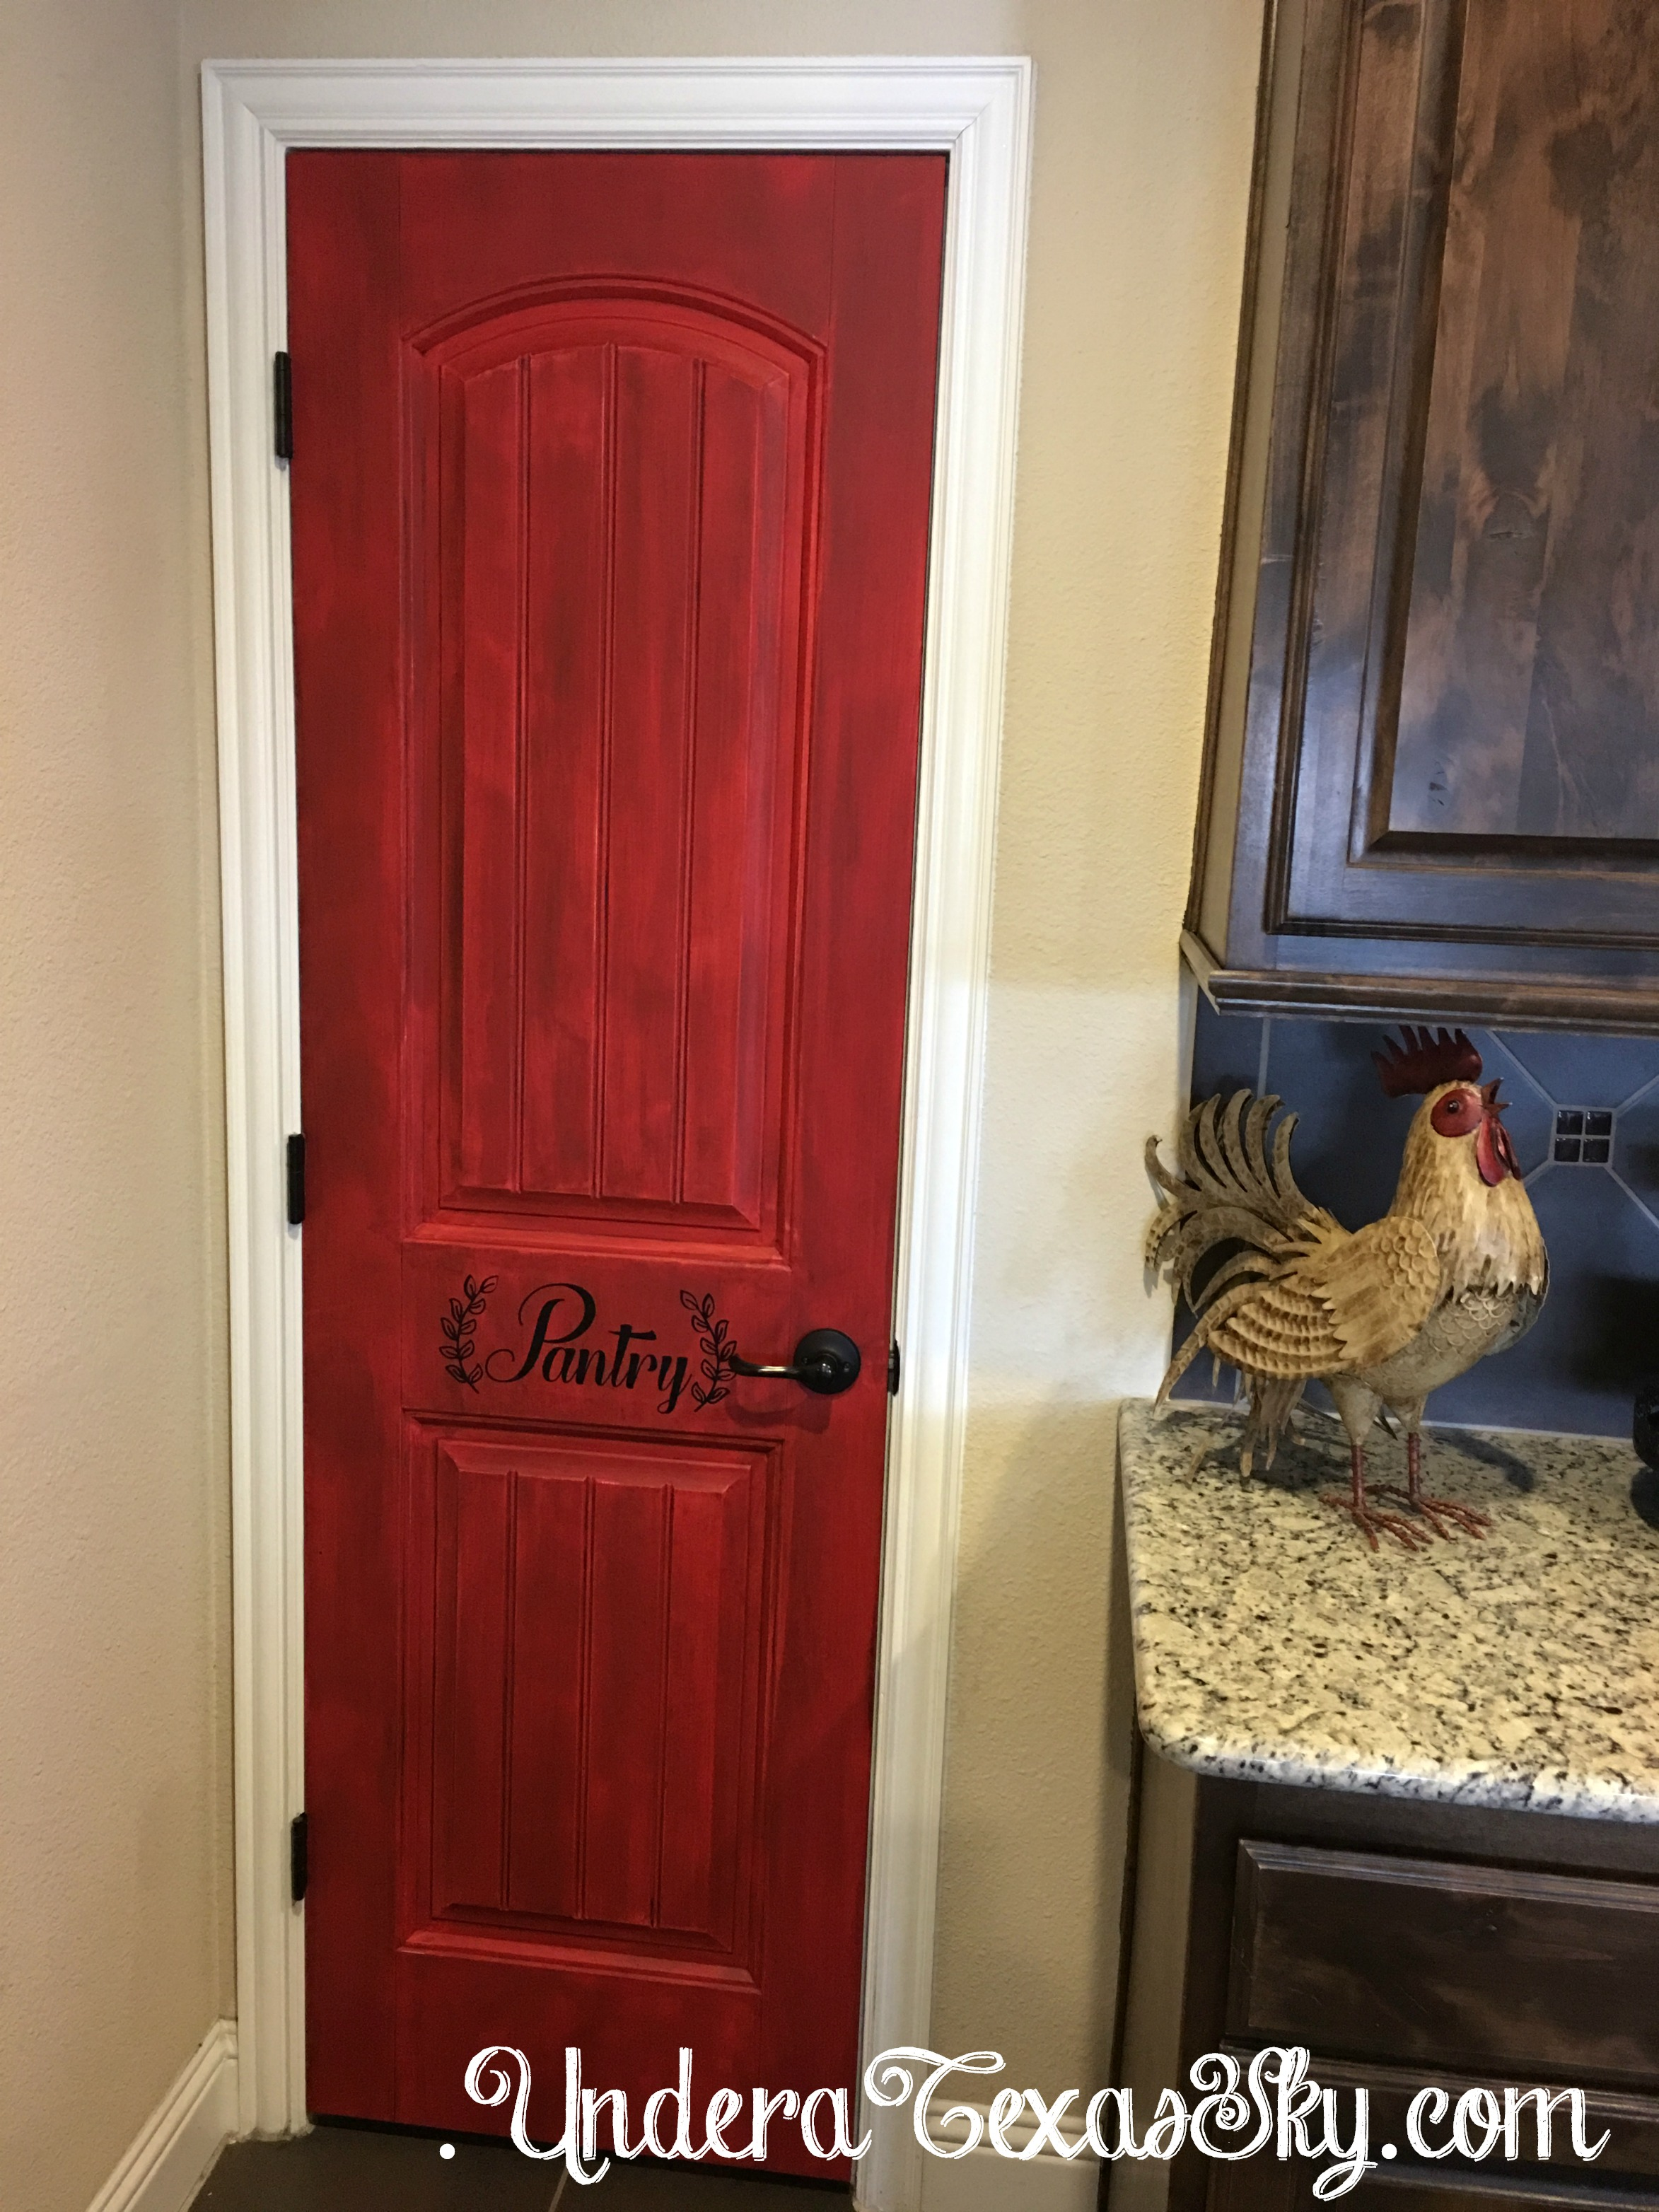 Check Out Pinterest To See Lots Of Other Colored Doors And Ideas I Love Them All